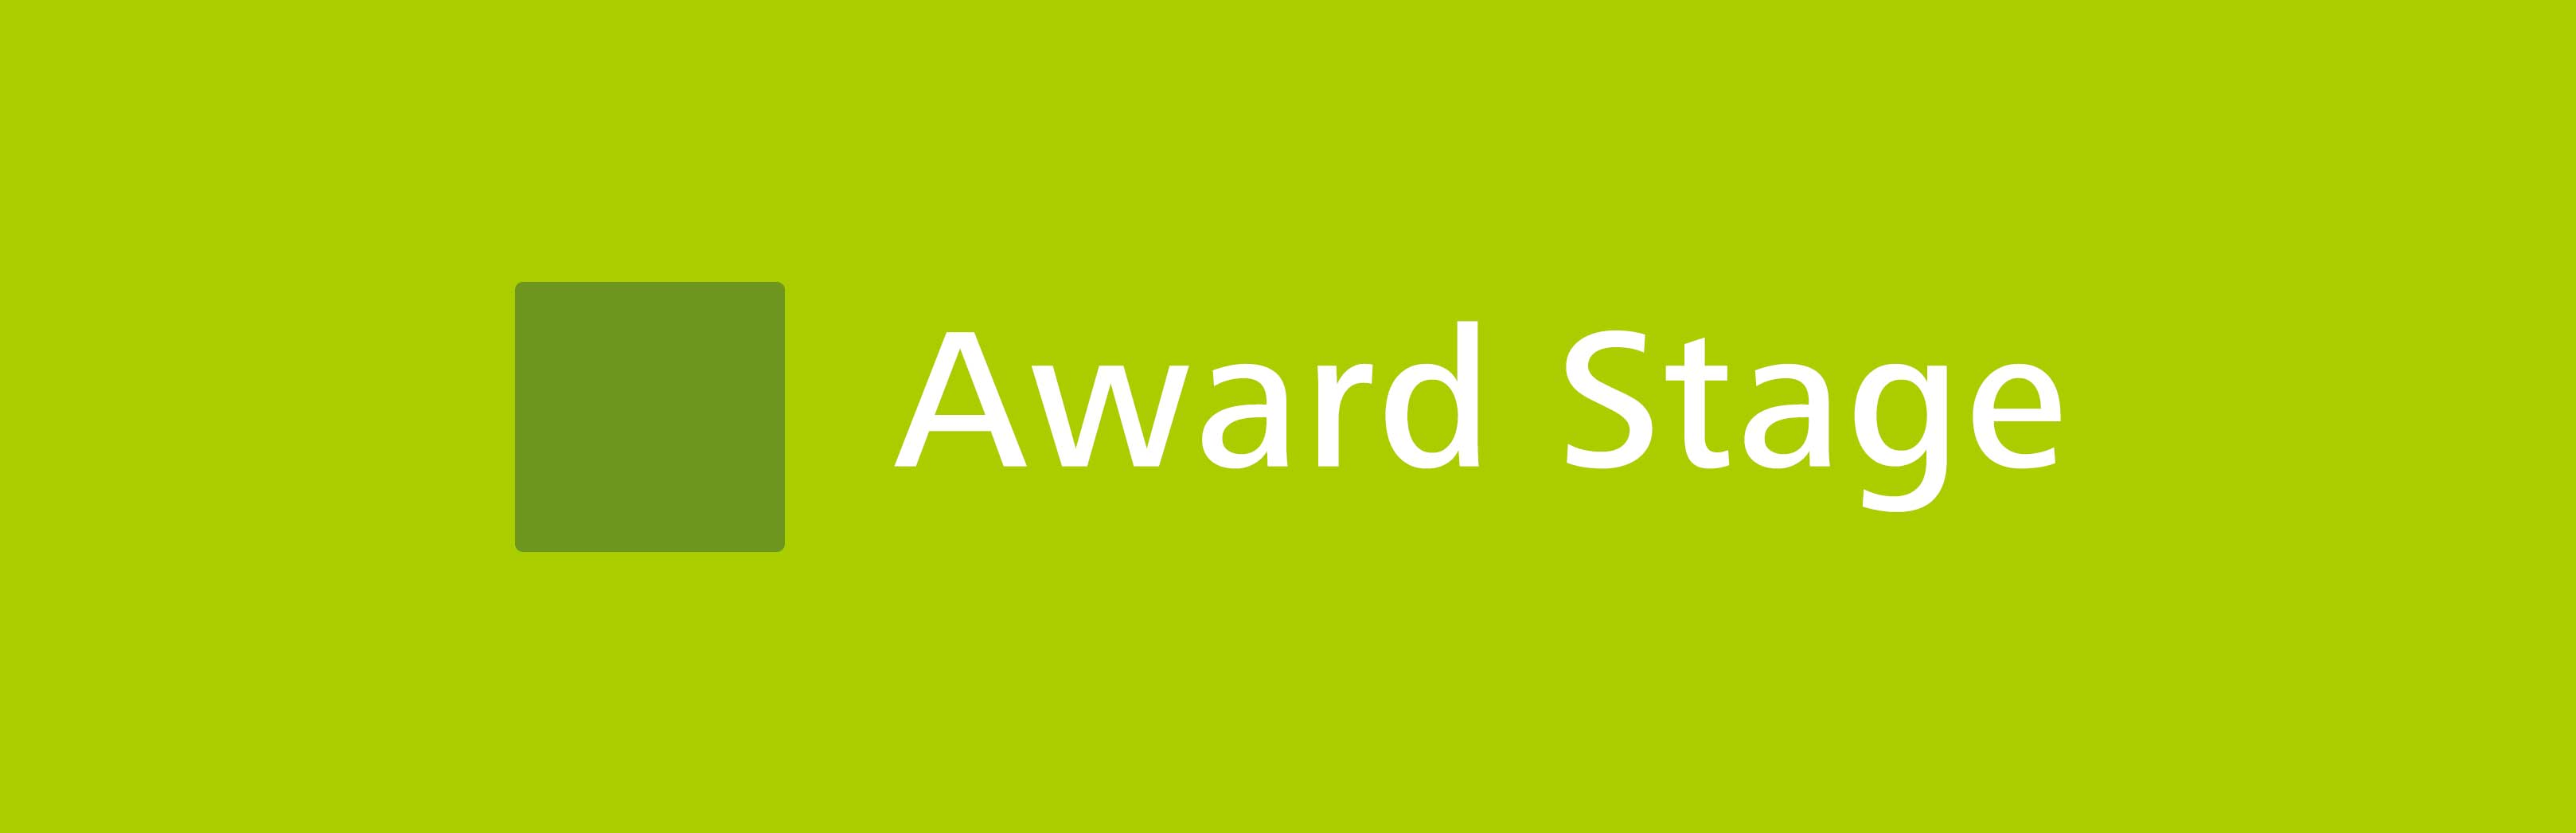 myBeviale.com Header Award Stage